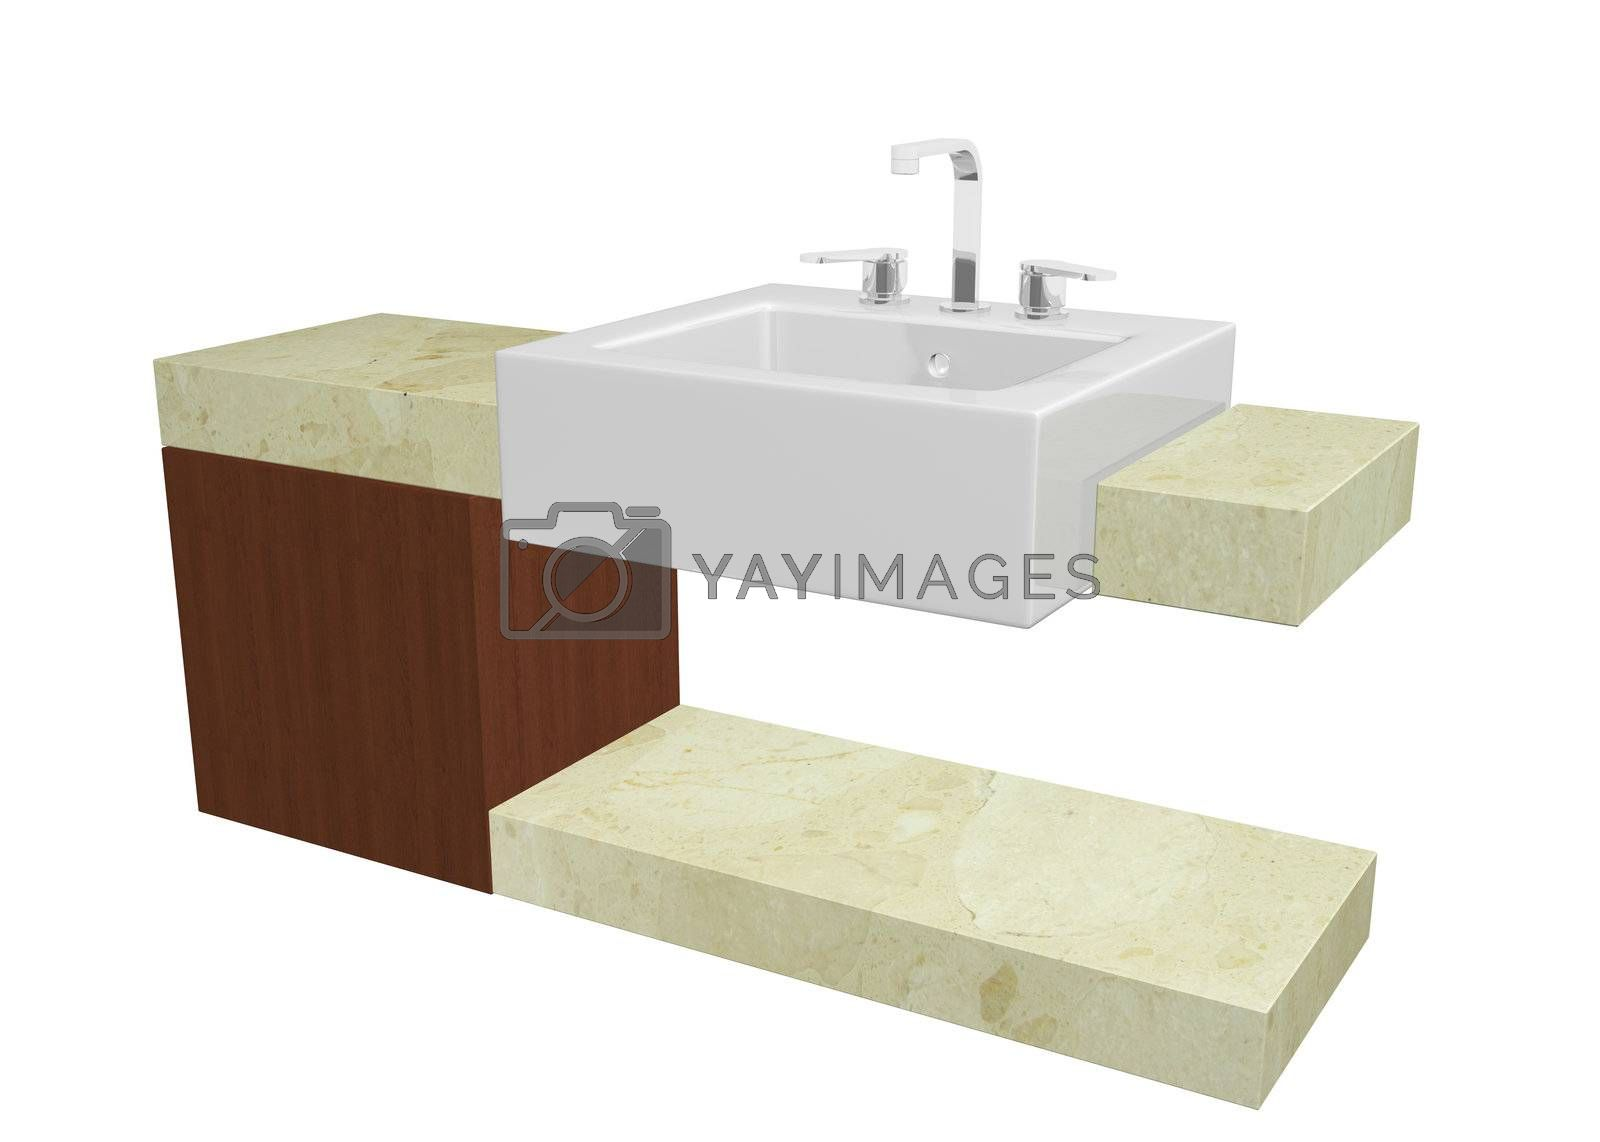 White square sink with chrome faucet, sitting on a marble table or countertop with a mohagany wooden cabinet, isolated against a white background